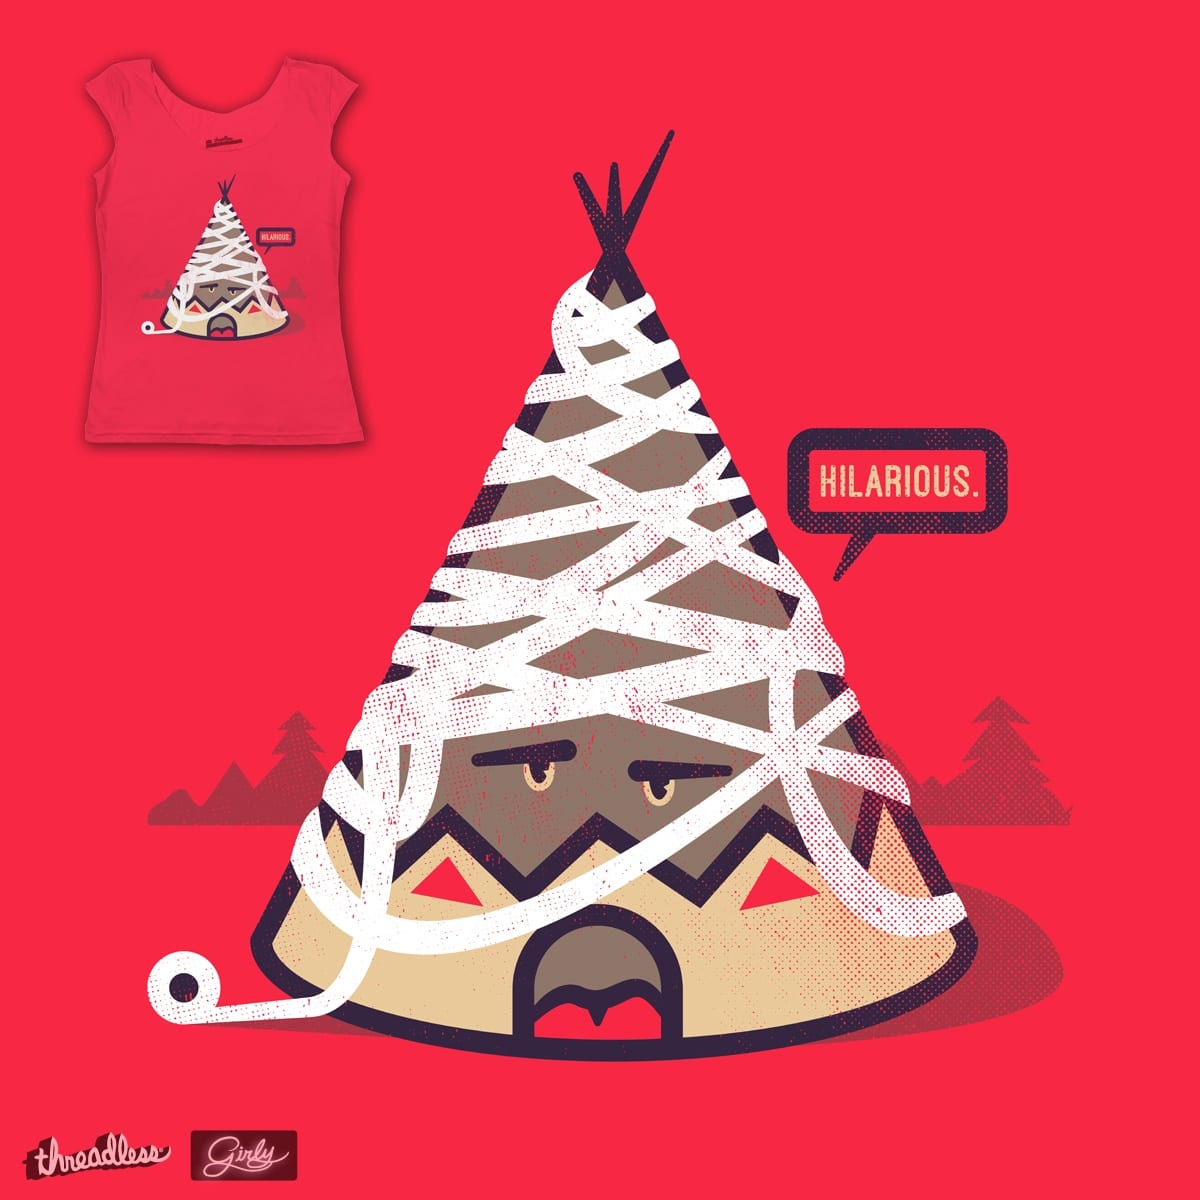 T.P.'d by campkatie on Threadless